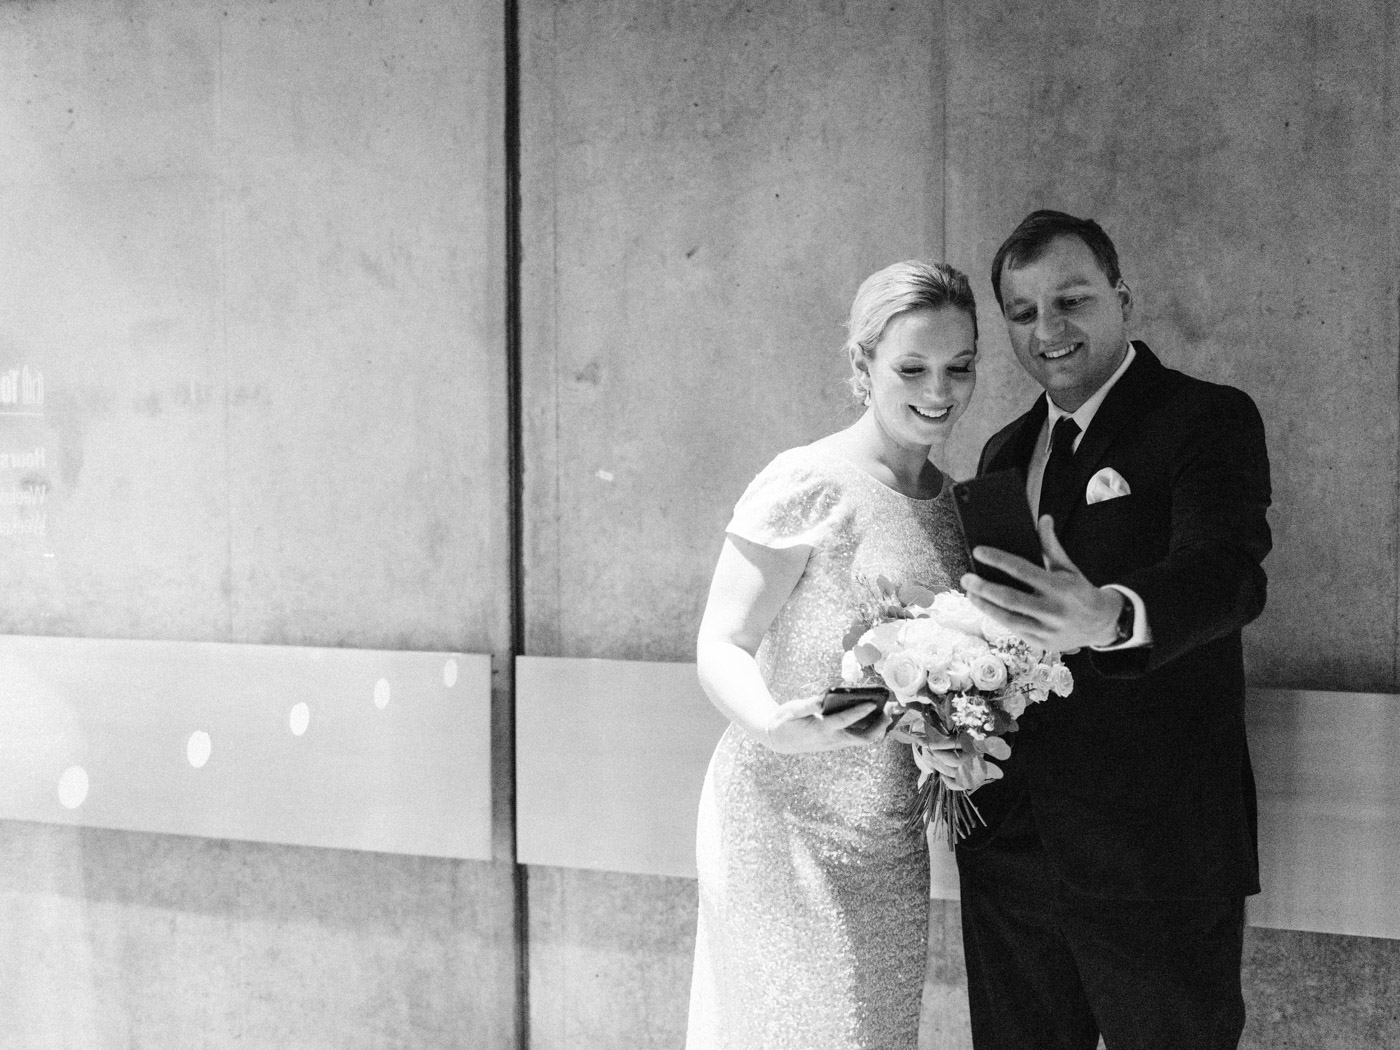 toronto_city_hall_wedding_photographs_nathan_phillips_square-105.jpg